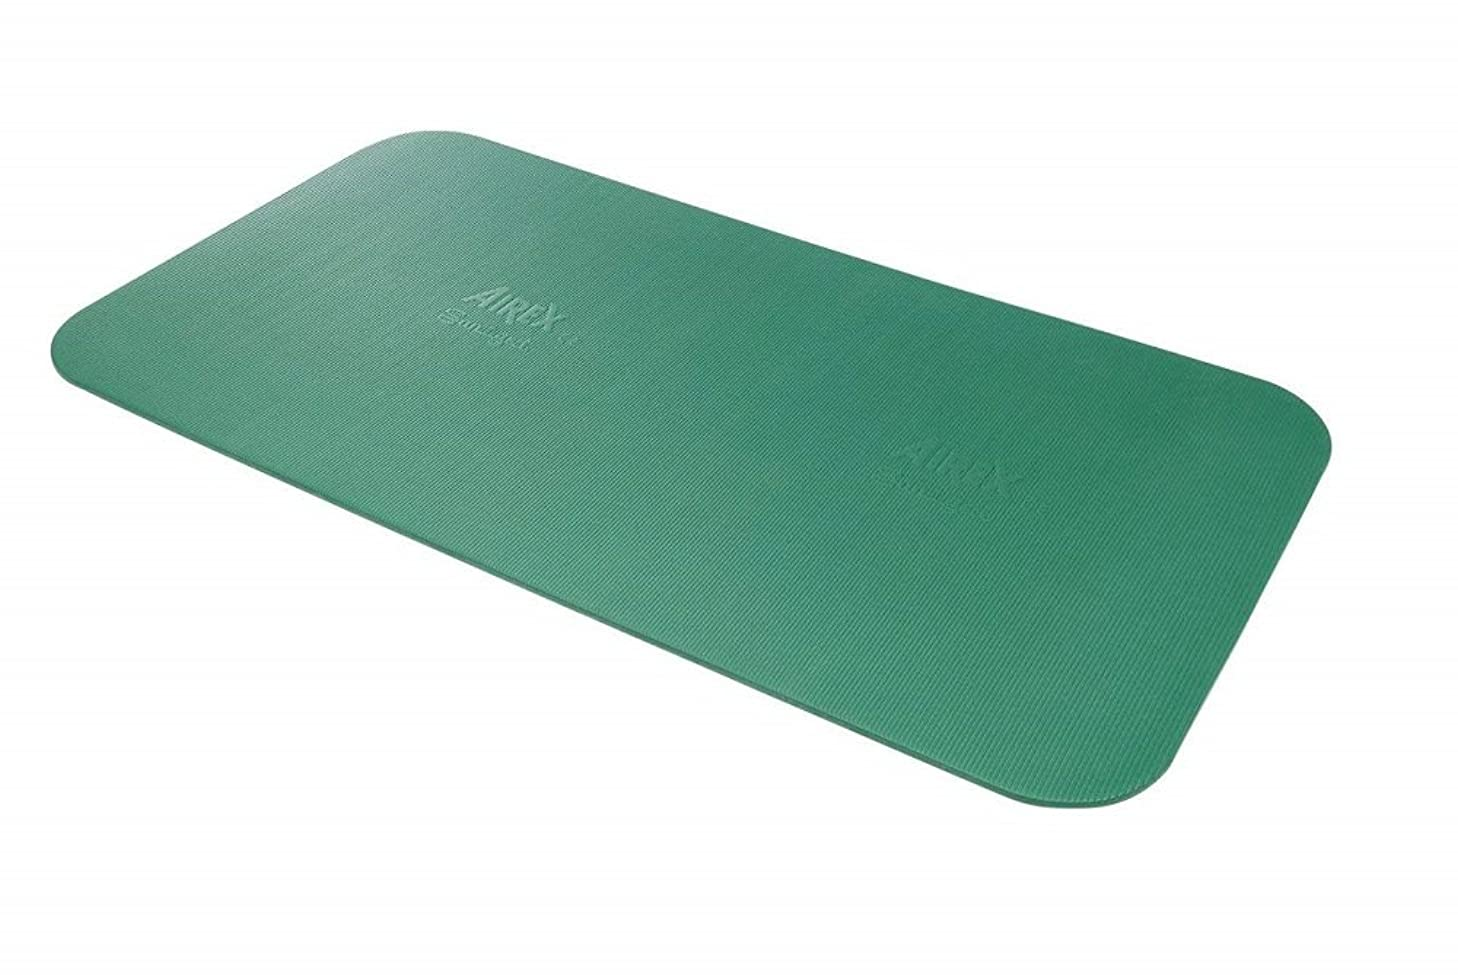 Airex Corona Professional Quality Exercise Mat Green 72